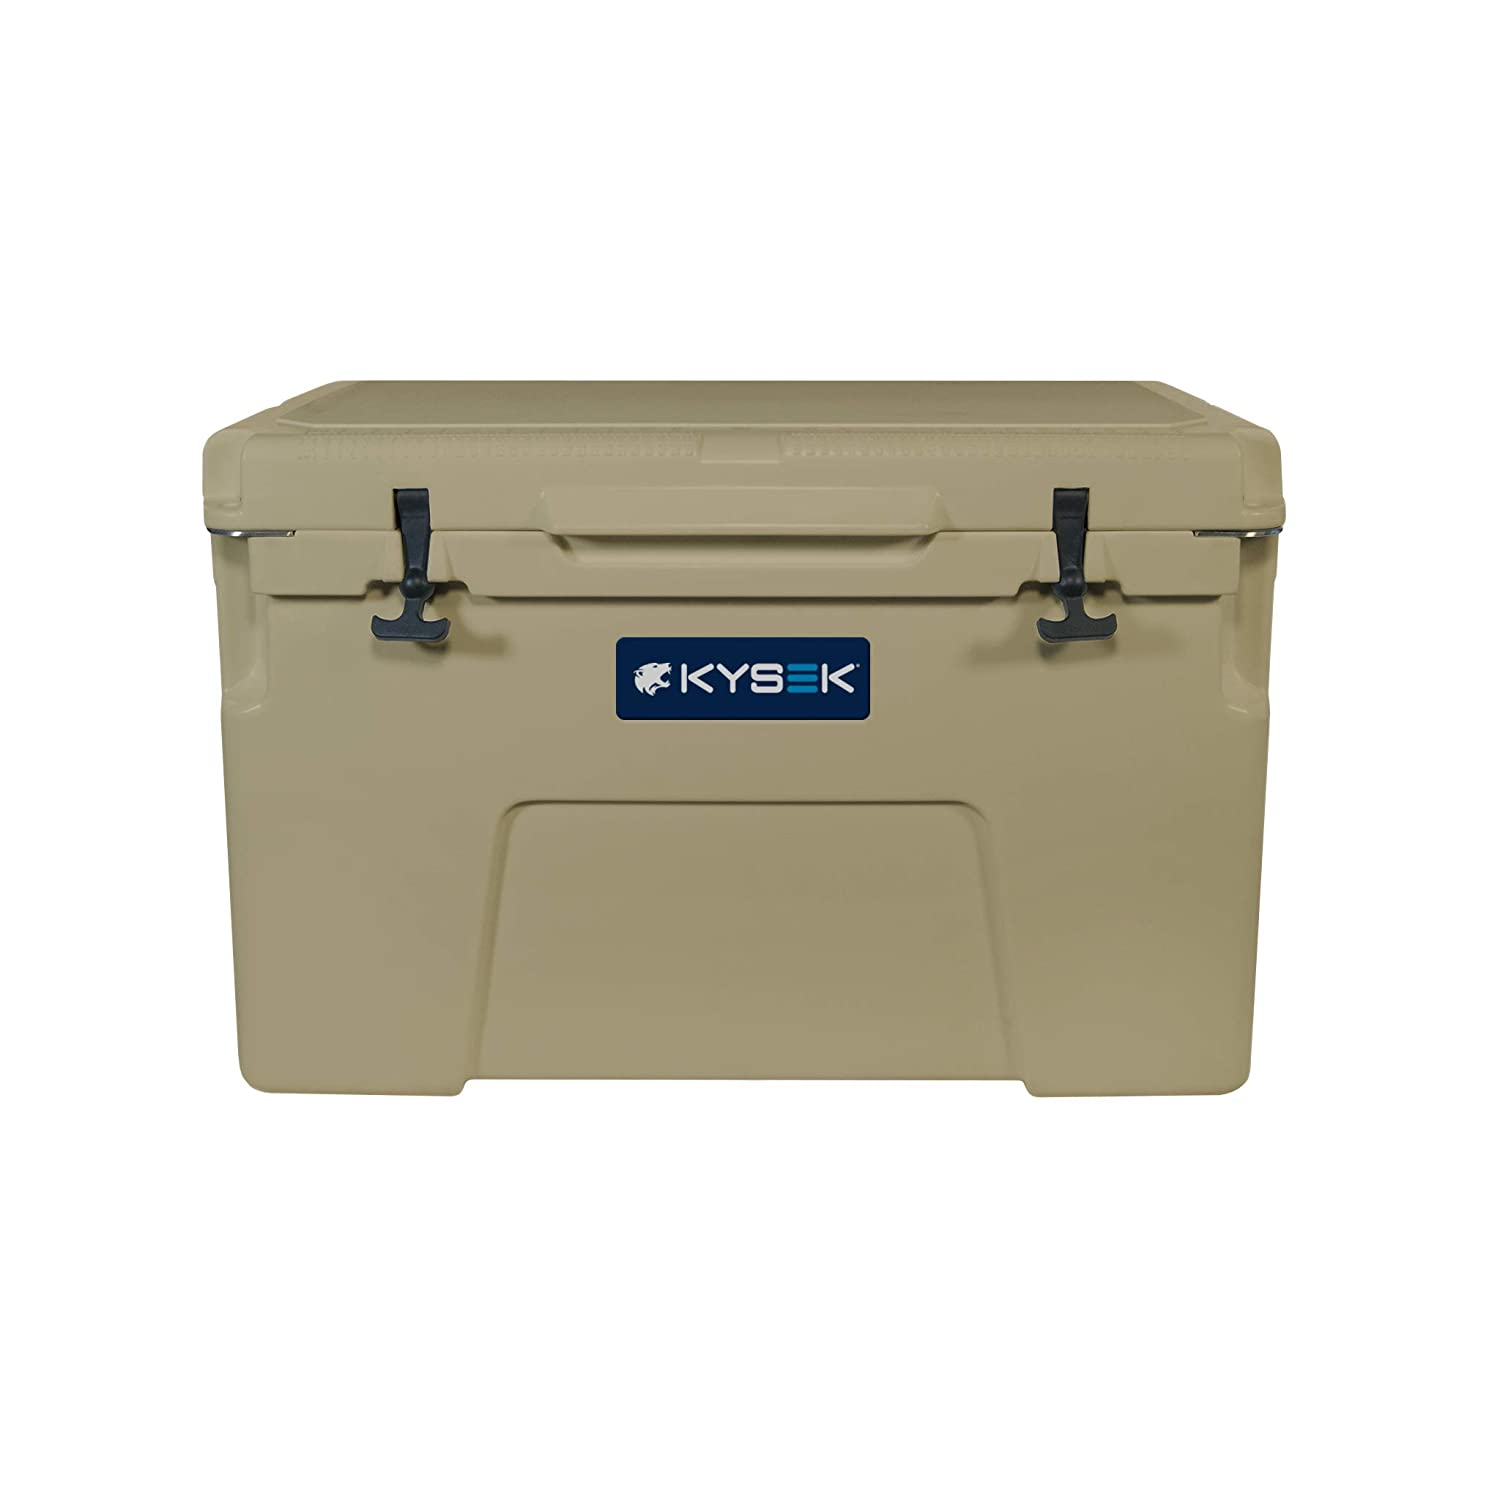 KYSEK Ultimate Ice Brust Camo Tan, 75 l